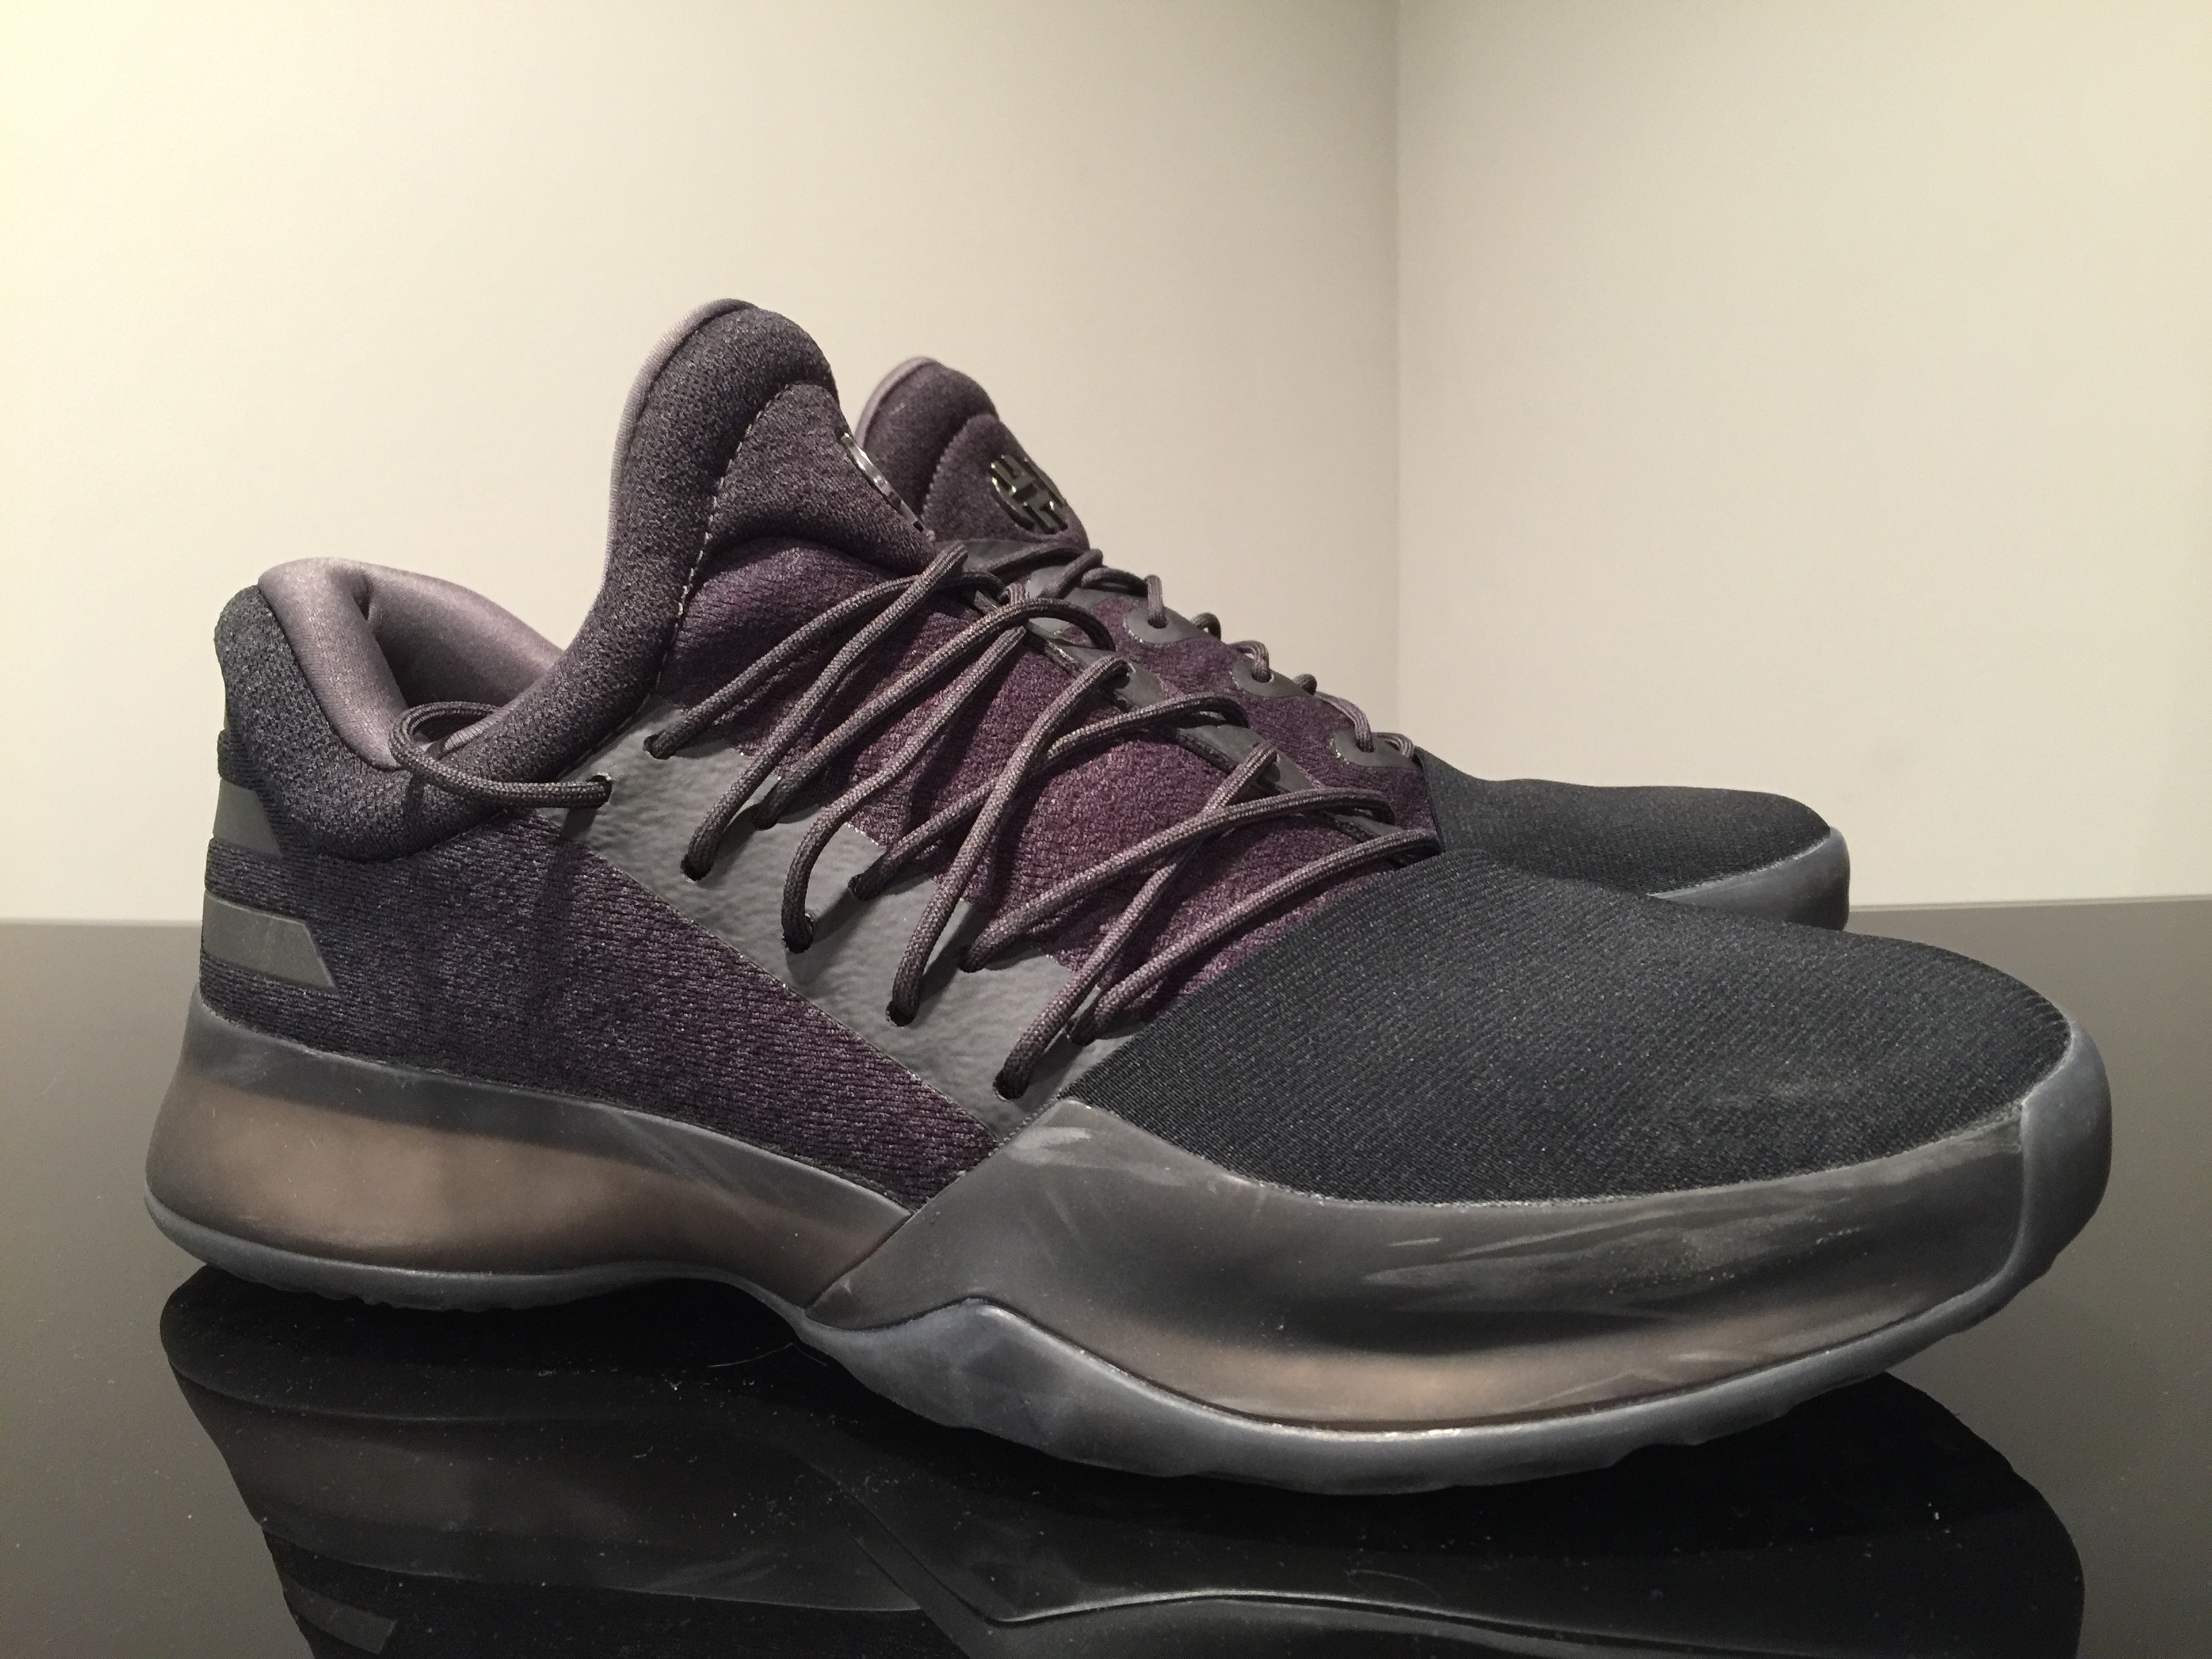 befa01346eb907 adidas Harden Vol. 1 Performance Review